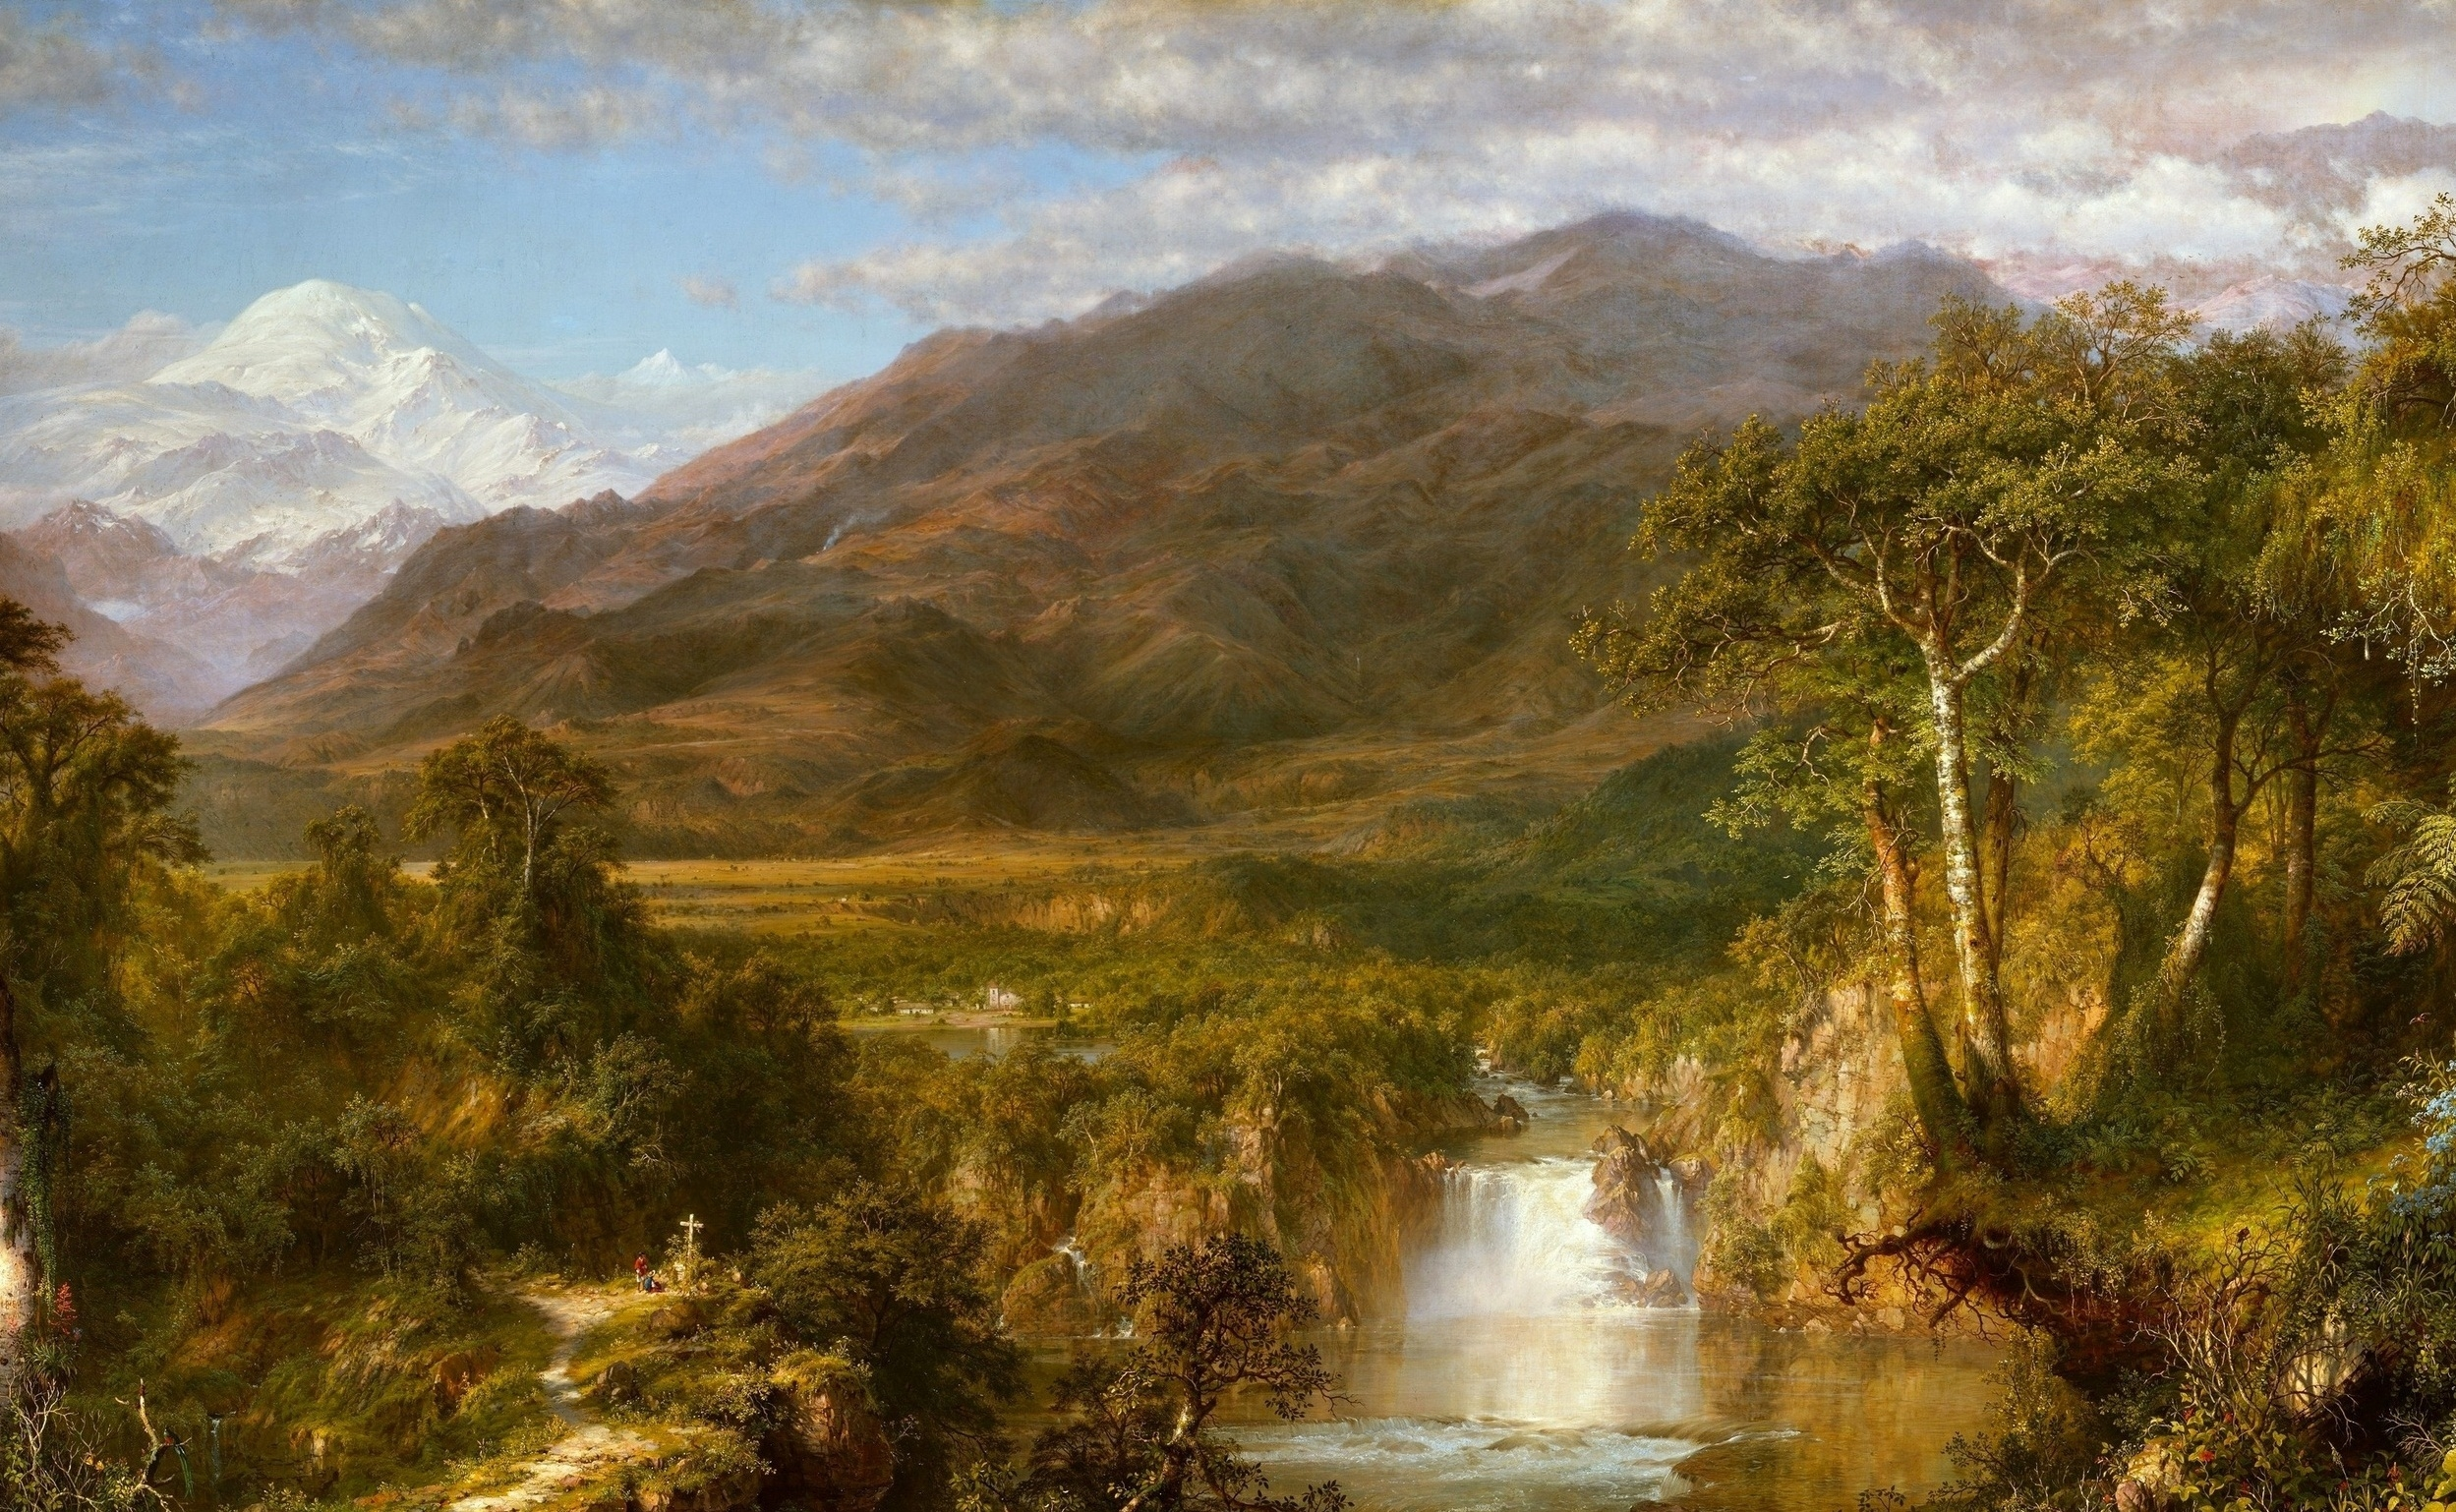 127923 download wallpaper Nature, Painting, Canvas, Art, Waterfall, Greatness, Grandeur, Butter, Oil, Mountains screensavers and pictures for free